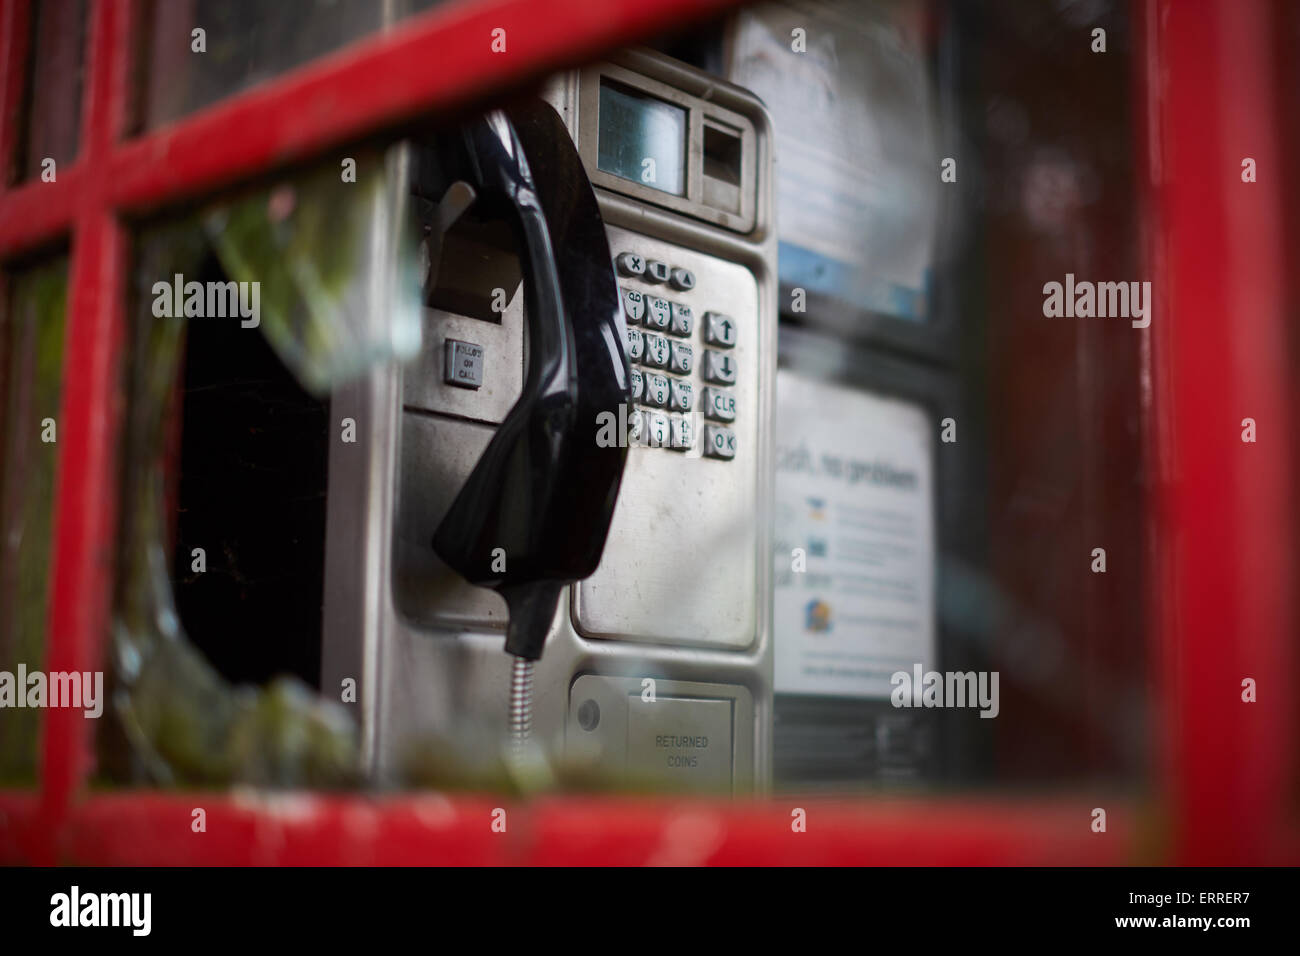 Through the broken window of a red telephone box - Stock Image